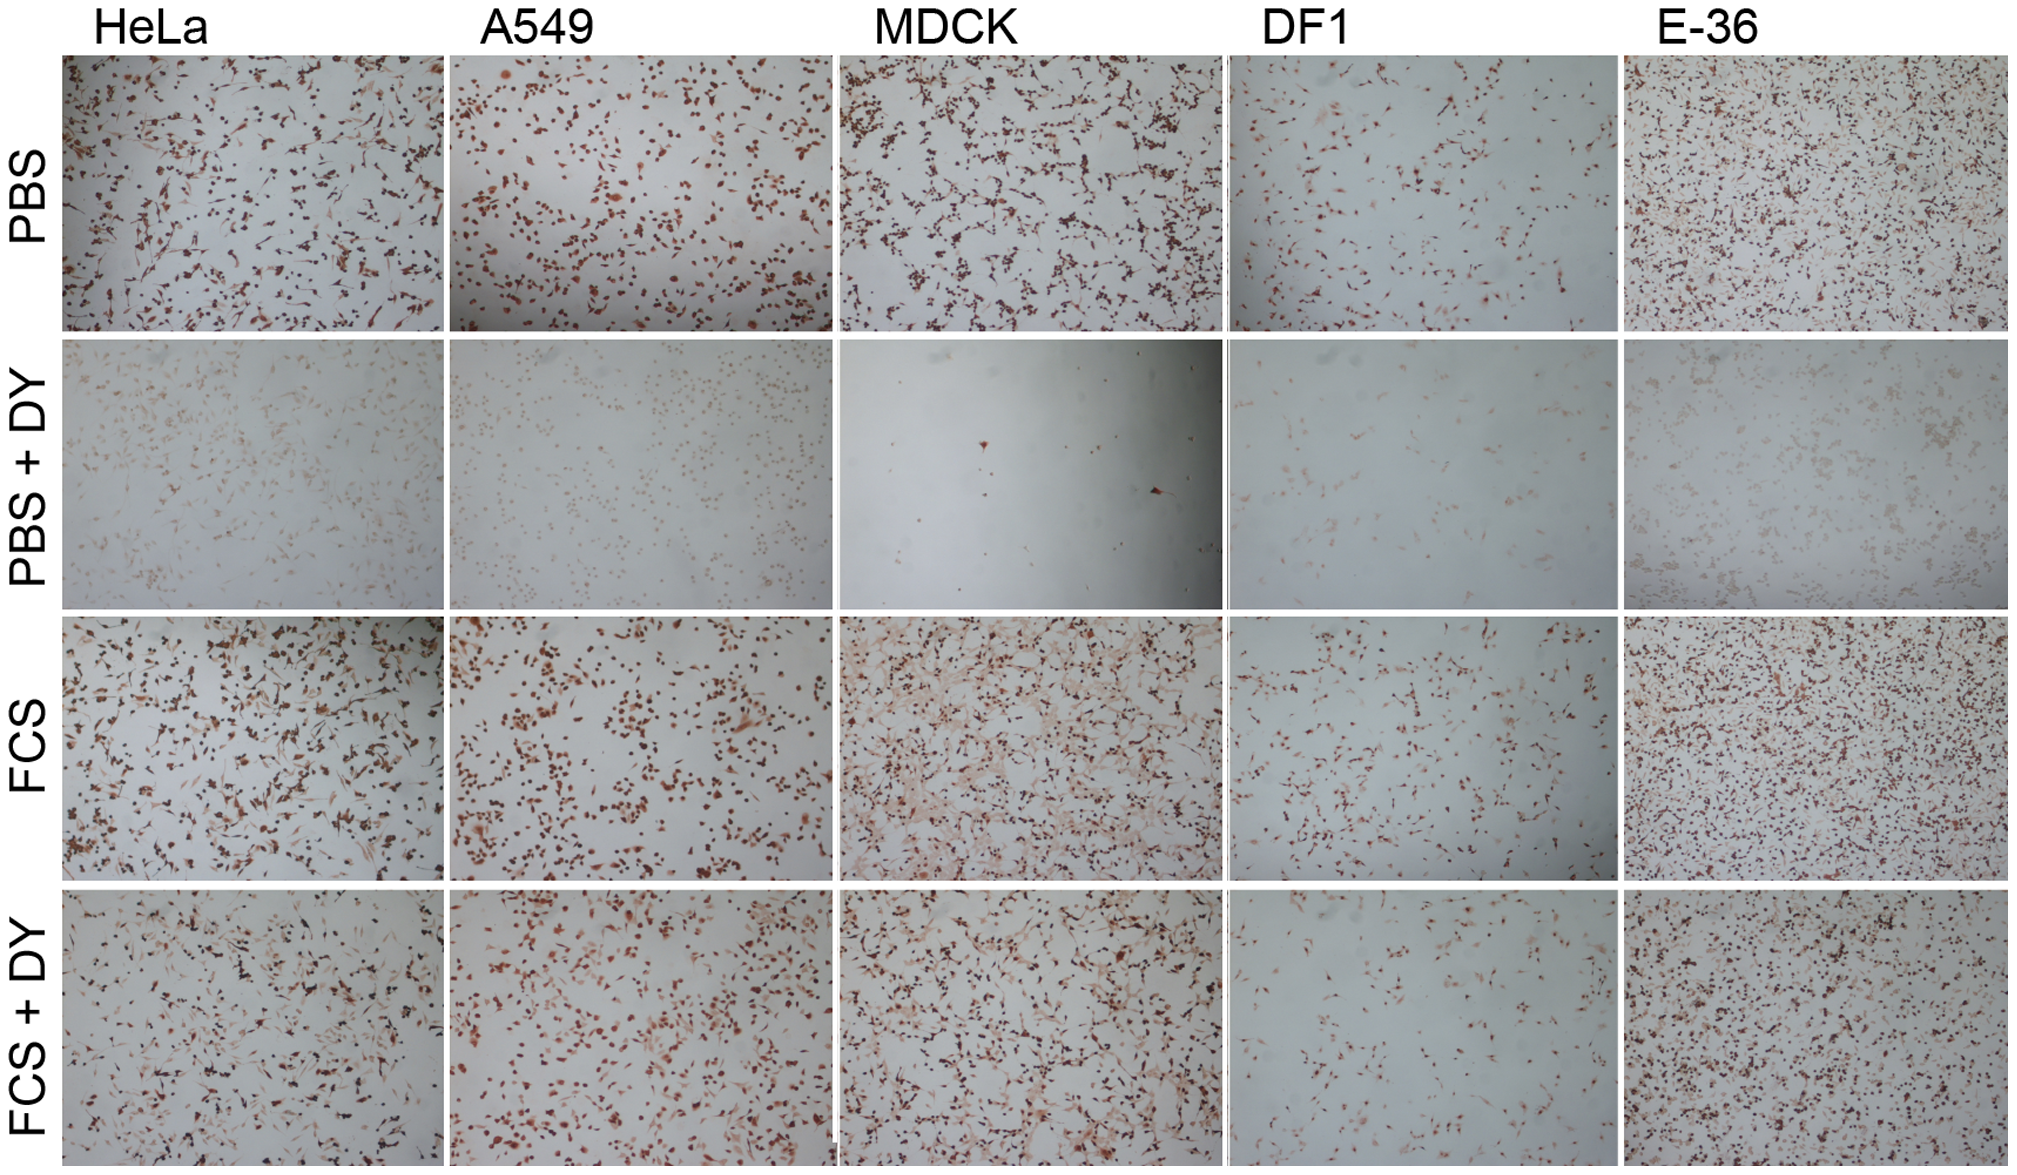 Serum-inducible DYNA-IND IAV entry in different cell types.